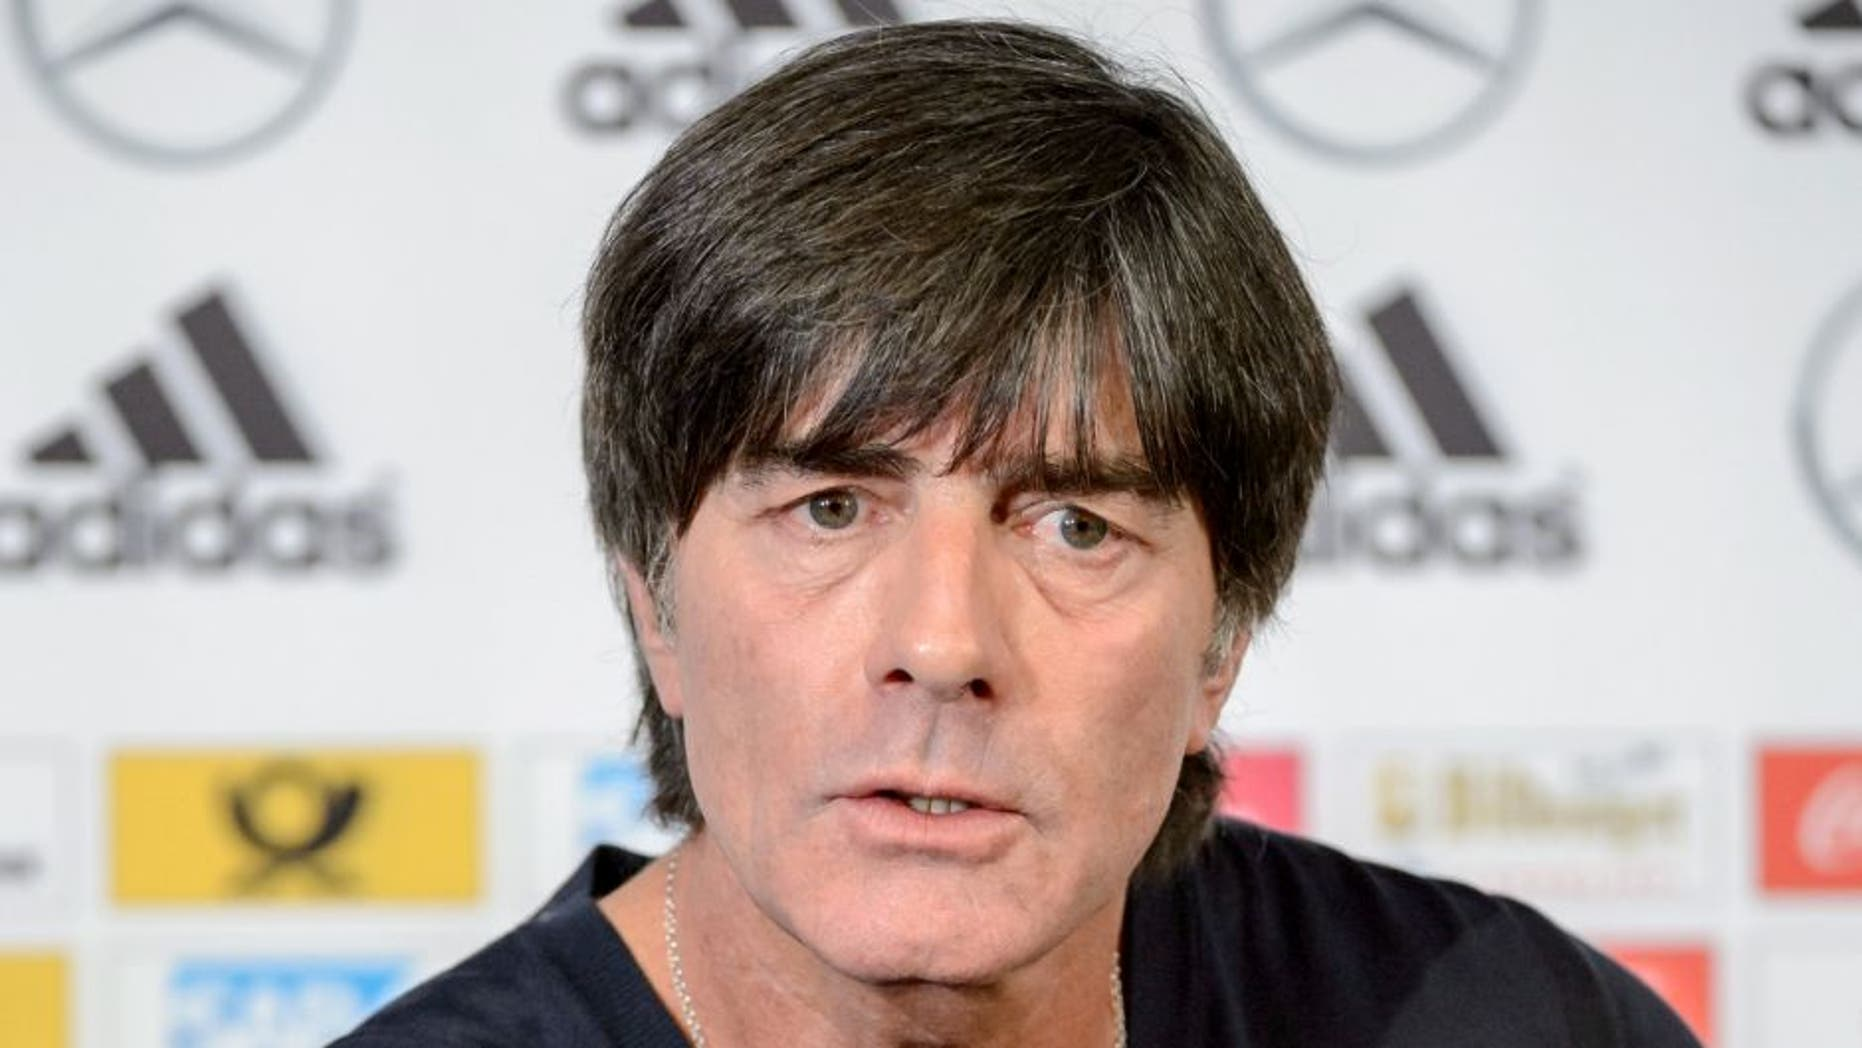 LEIPZIG, GERMANY - OCTOBER 10: Joachim Loew, head coach of German national team attends the German National Team press conference at Red Bull Arena on October 10, 2015 in Leipzig, Germany. (Photo by Jens Schlueter/Bongarts/Getty Images)